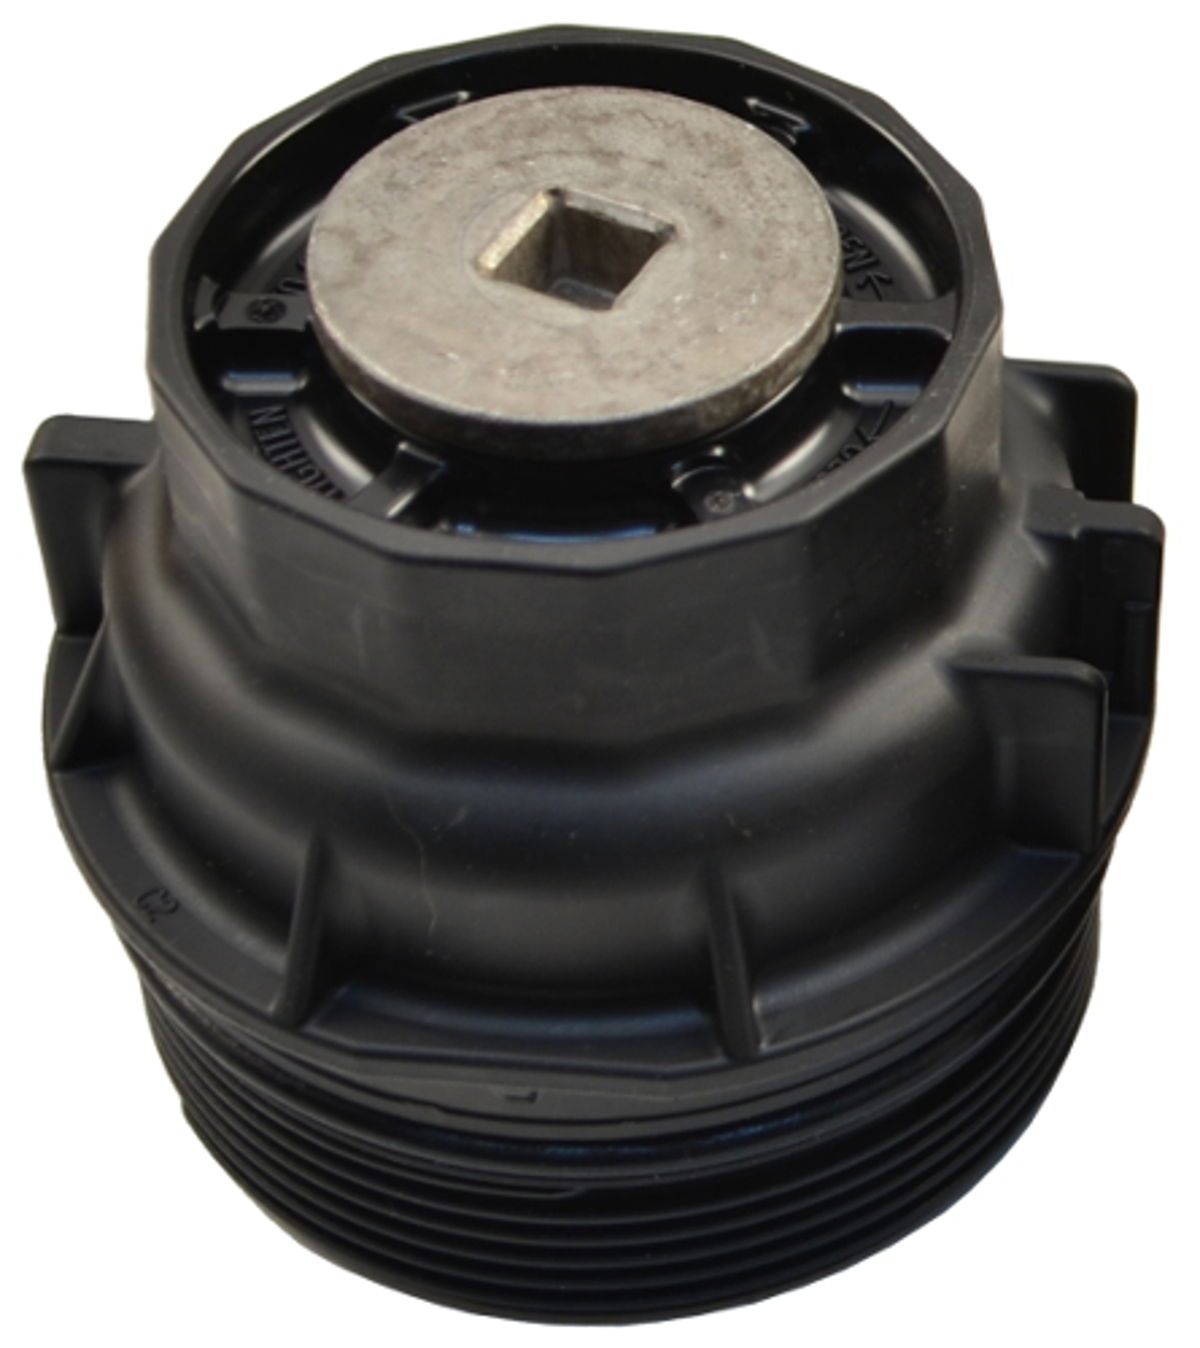 Plastic Toyota Oil Filter Housing